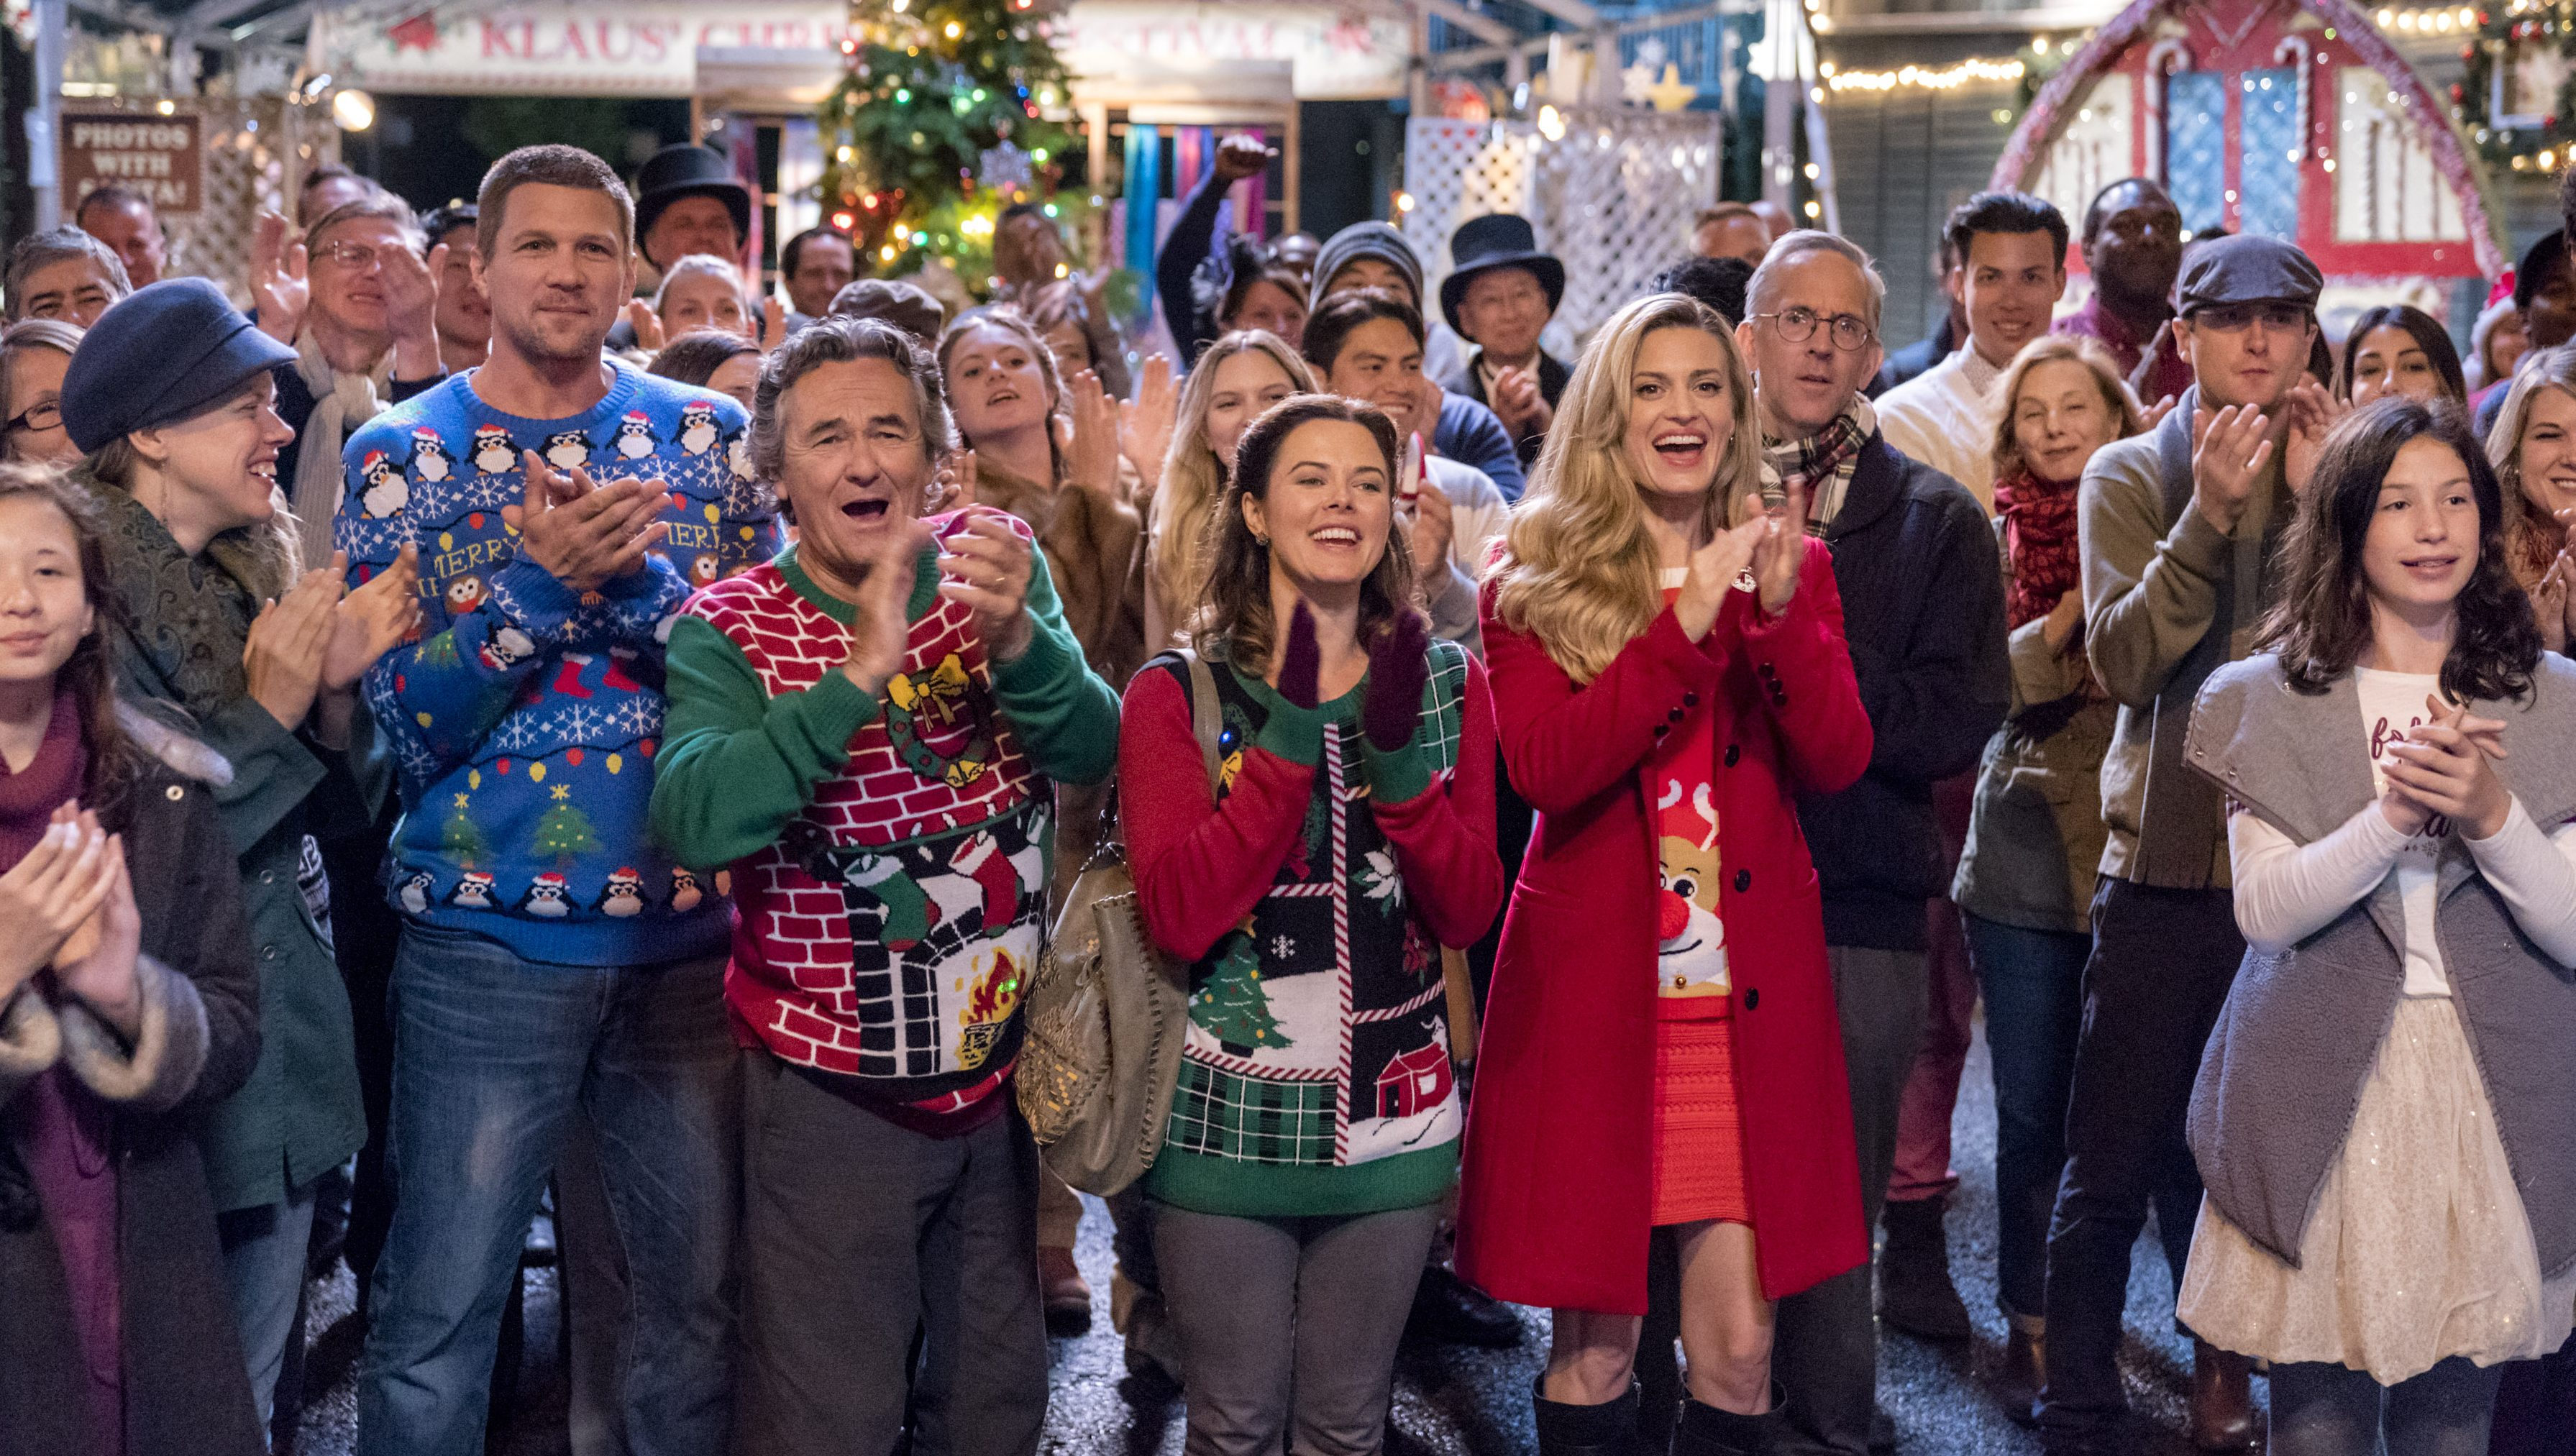 Klaus Wisconsin Christmas Festival 2020 Where Was Hallmark's 'Miss Christmas' Filmed? | Heavy.com